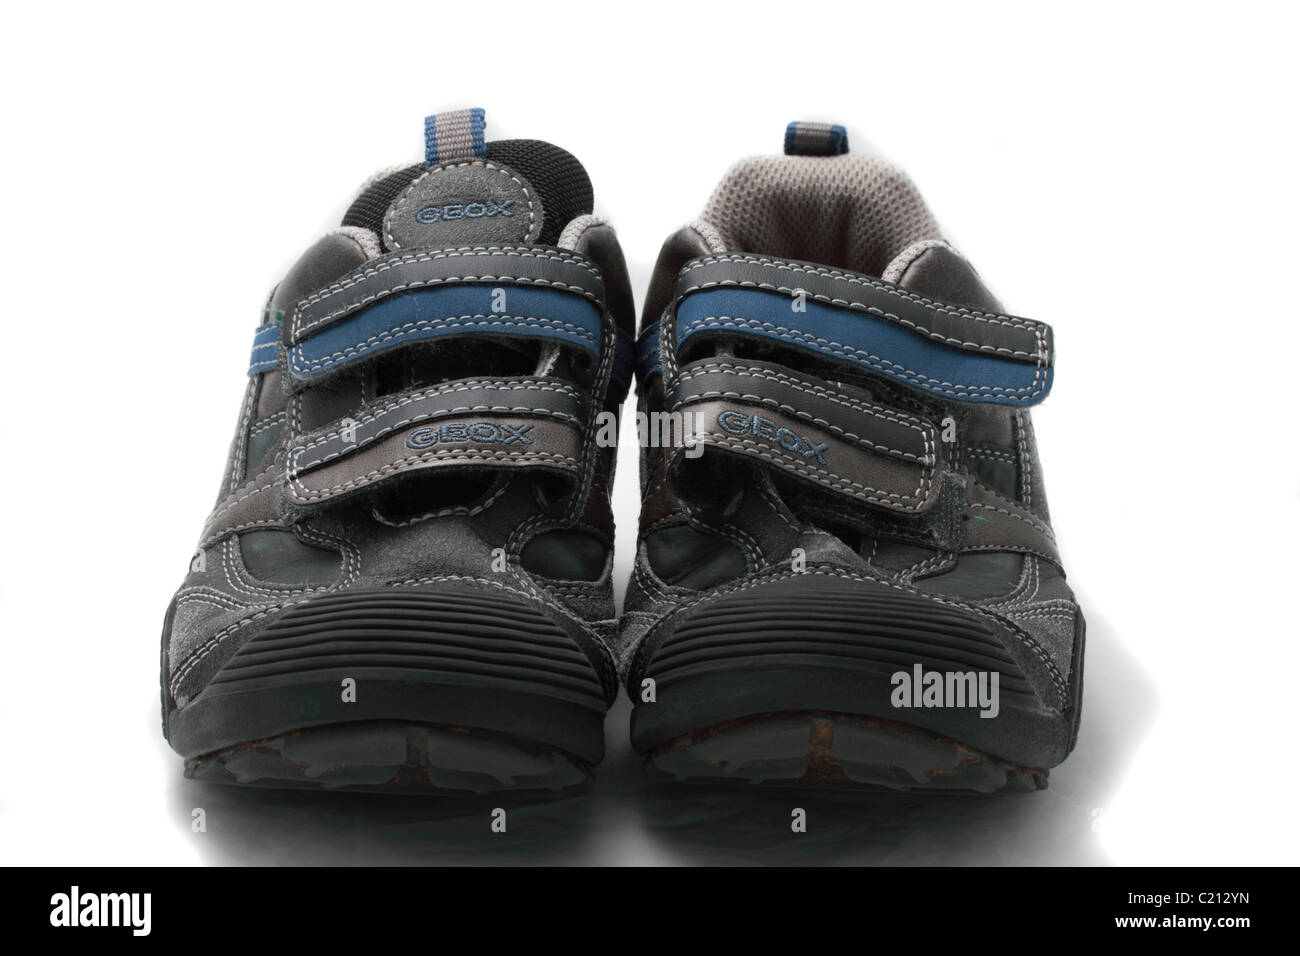 Geox Respira child's training shoes Geobuck and oiled suede, grey and sky blue size 33 (UK size 1) - Stock Image